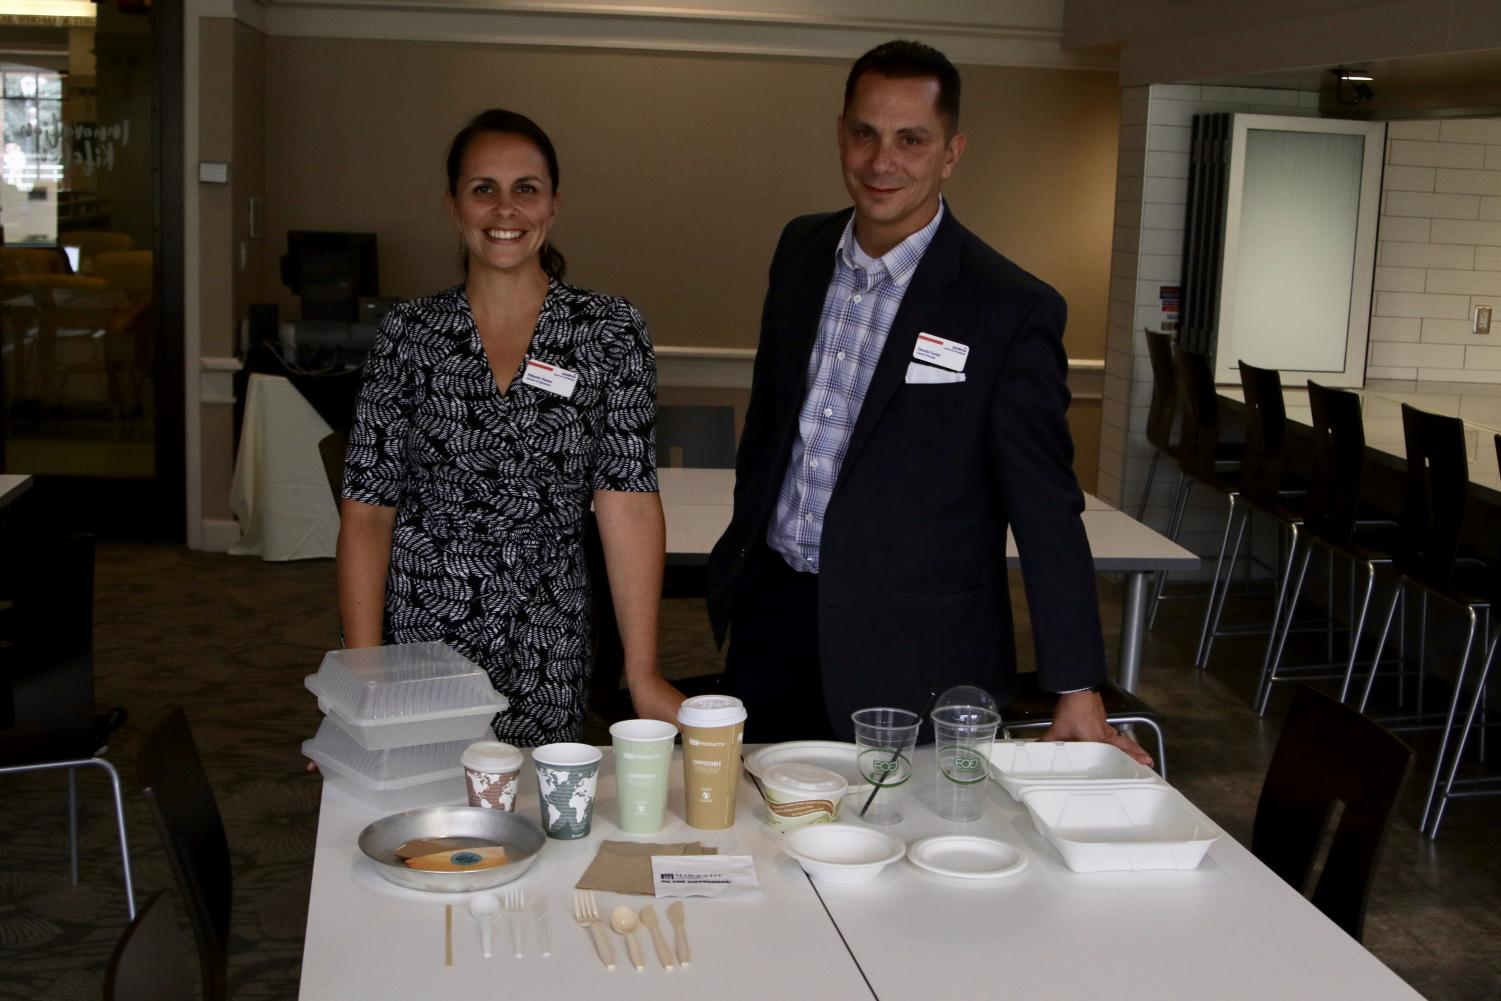 Melanie Vianes and Donato Guida presenting Marquette Dining's compostable and reusable items.  Photo courtesy of Joseph Beaird.